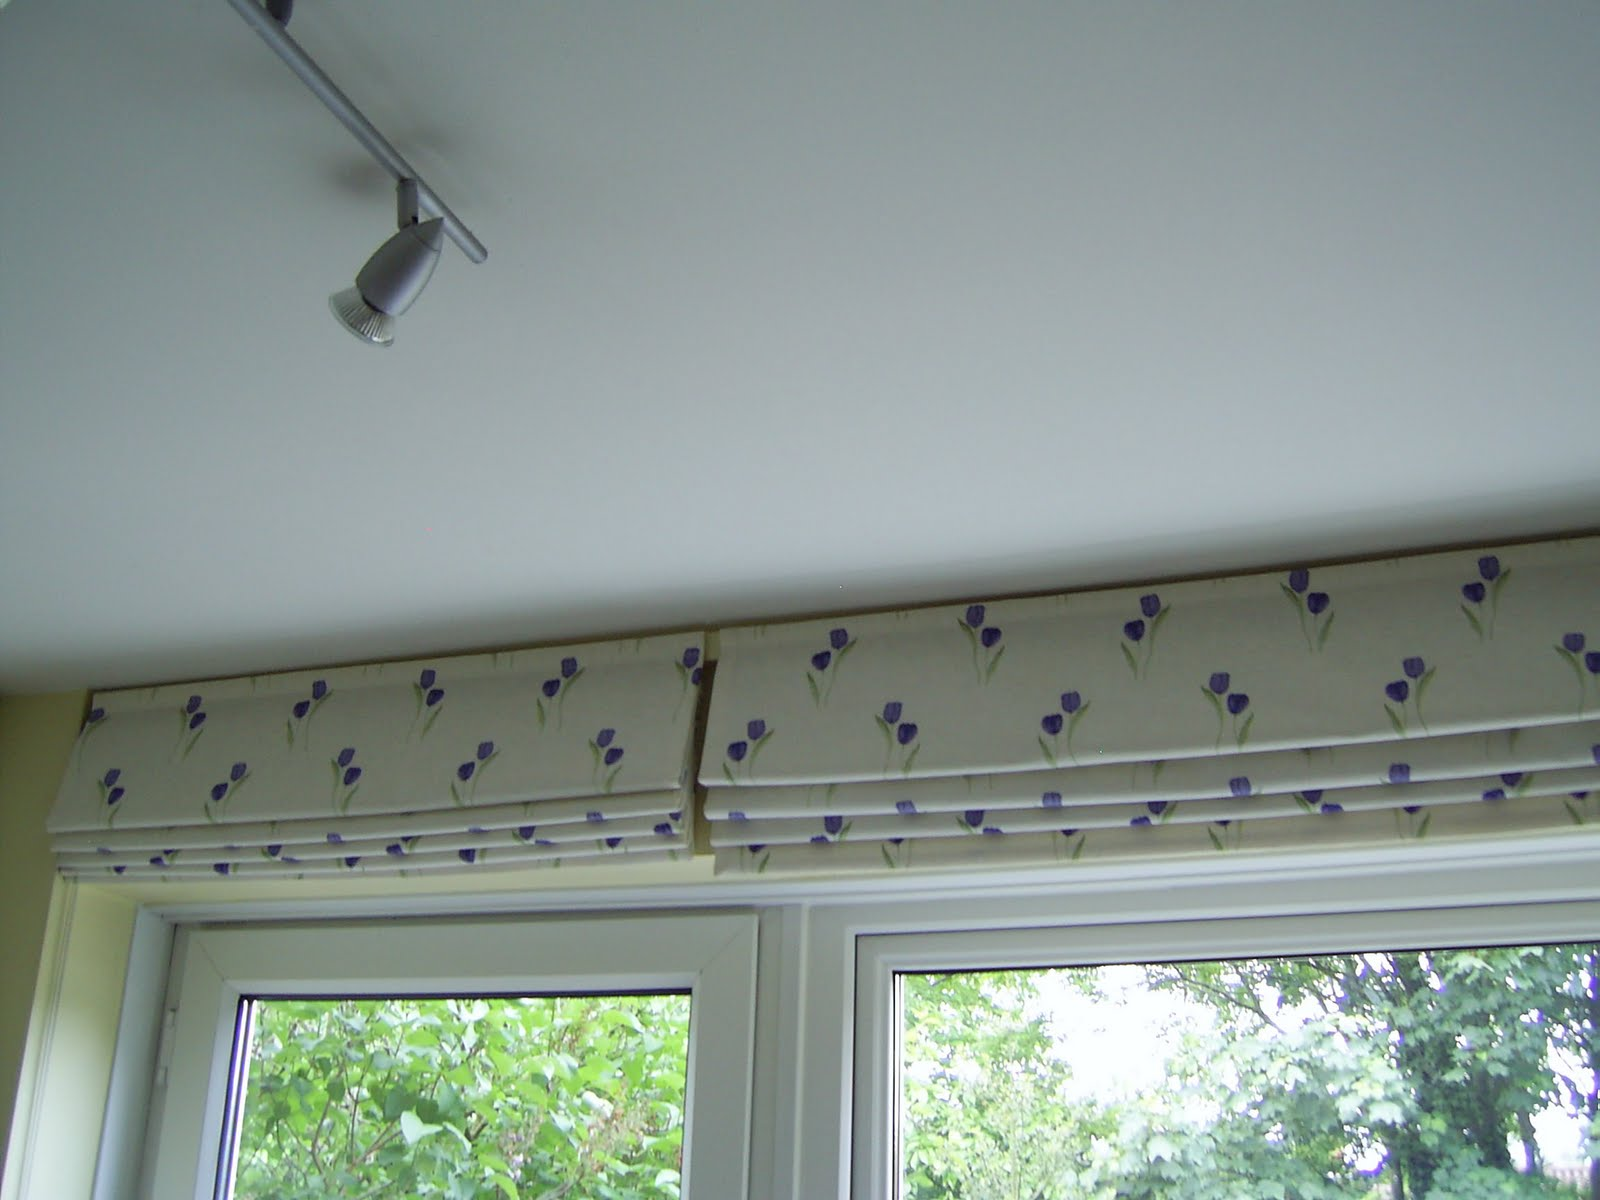 Roller Blinds For Kitchen Baggieaggie Low Cost Kitchen Blinds For Awkward Spaces